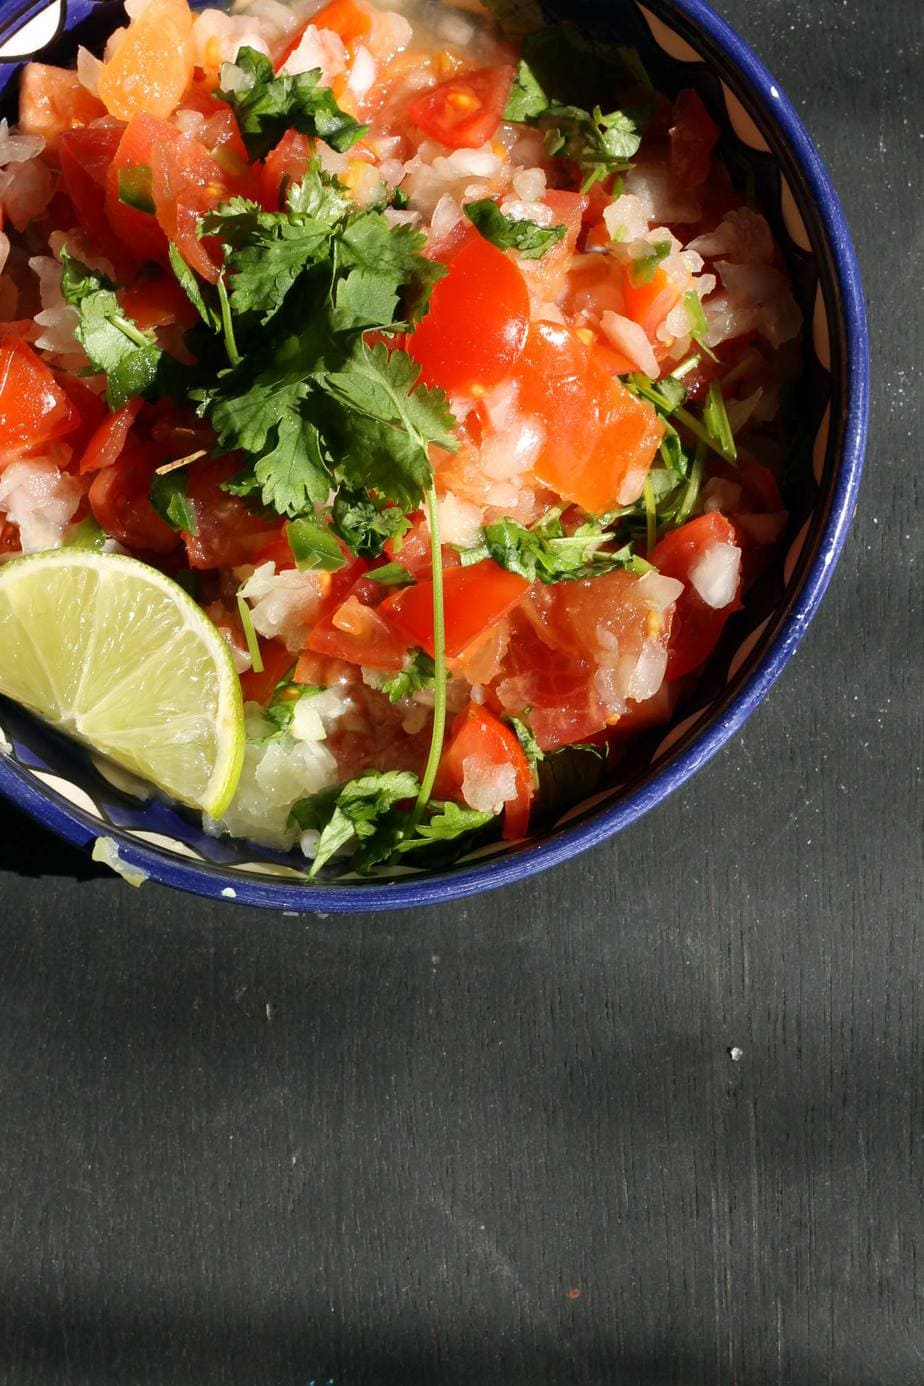 Pico de Gallo in a bowl with coriander/cilantro and a wedge of fresh lime.